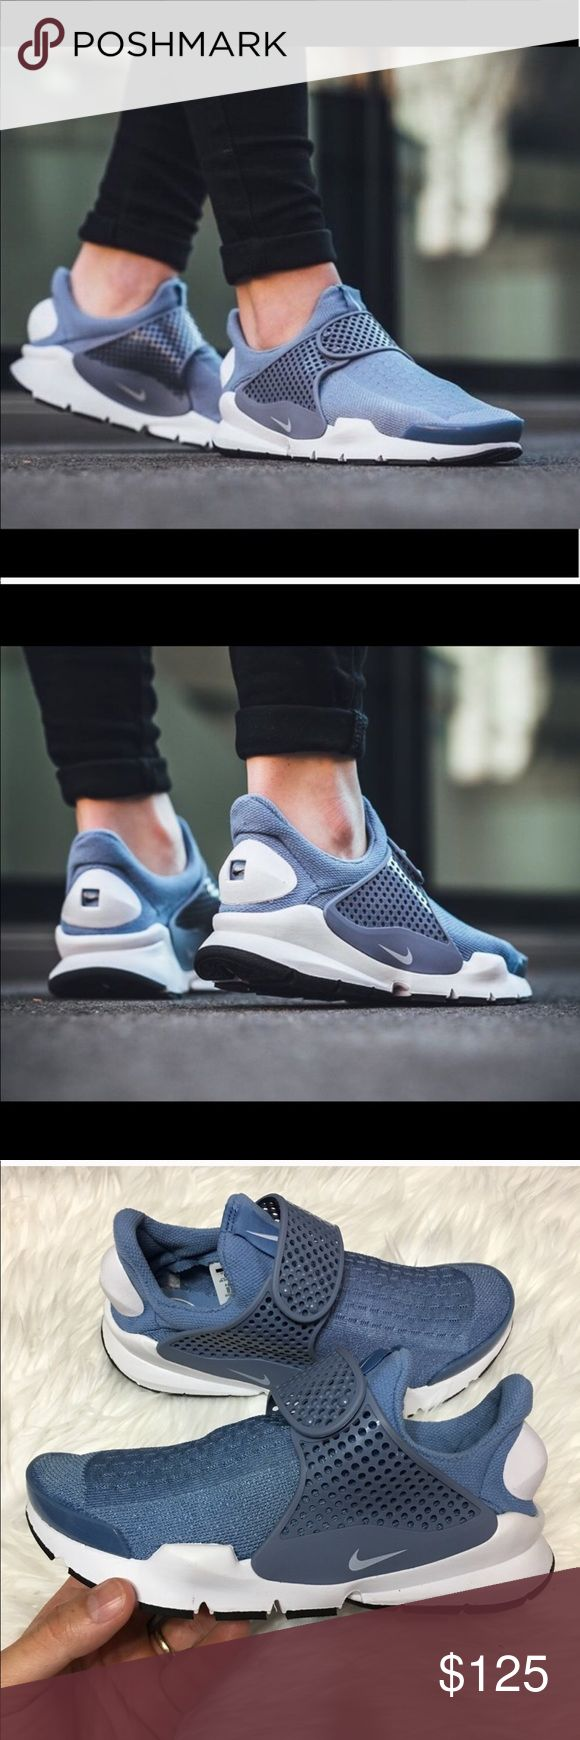 📍LAST CHANCE📍 Nike Sock Dart BRAND NEW- ORIGINAL BOX NO LID                                                                                                             PRICE ⬇️⬇️⬇️⬇️⬇️⬇️⬇️⬇️⬇️⬇️⬇️⬇️⬇️⬇️⬇️            ✅NEXT DAY SHIPPING ✅BUNDLES DISCOUNT                                                                 🙅🏻 NO TRADES 🙅🏻NO LOWBALLING Nike Shoes Athletic Shoes